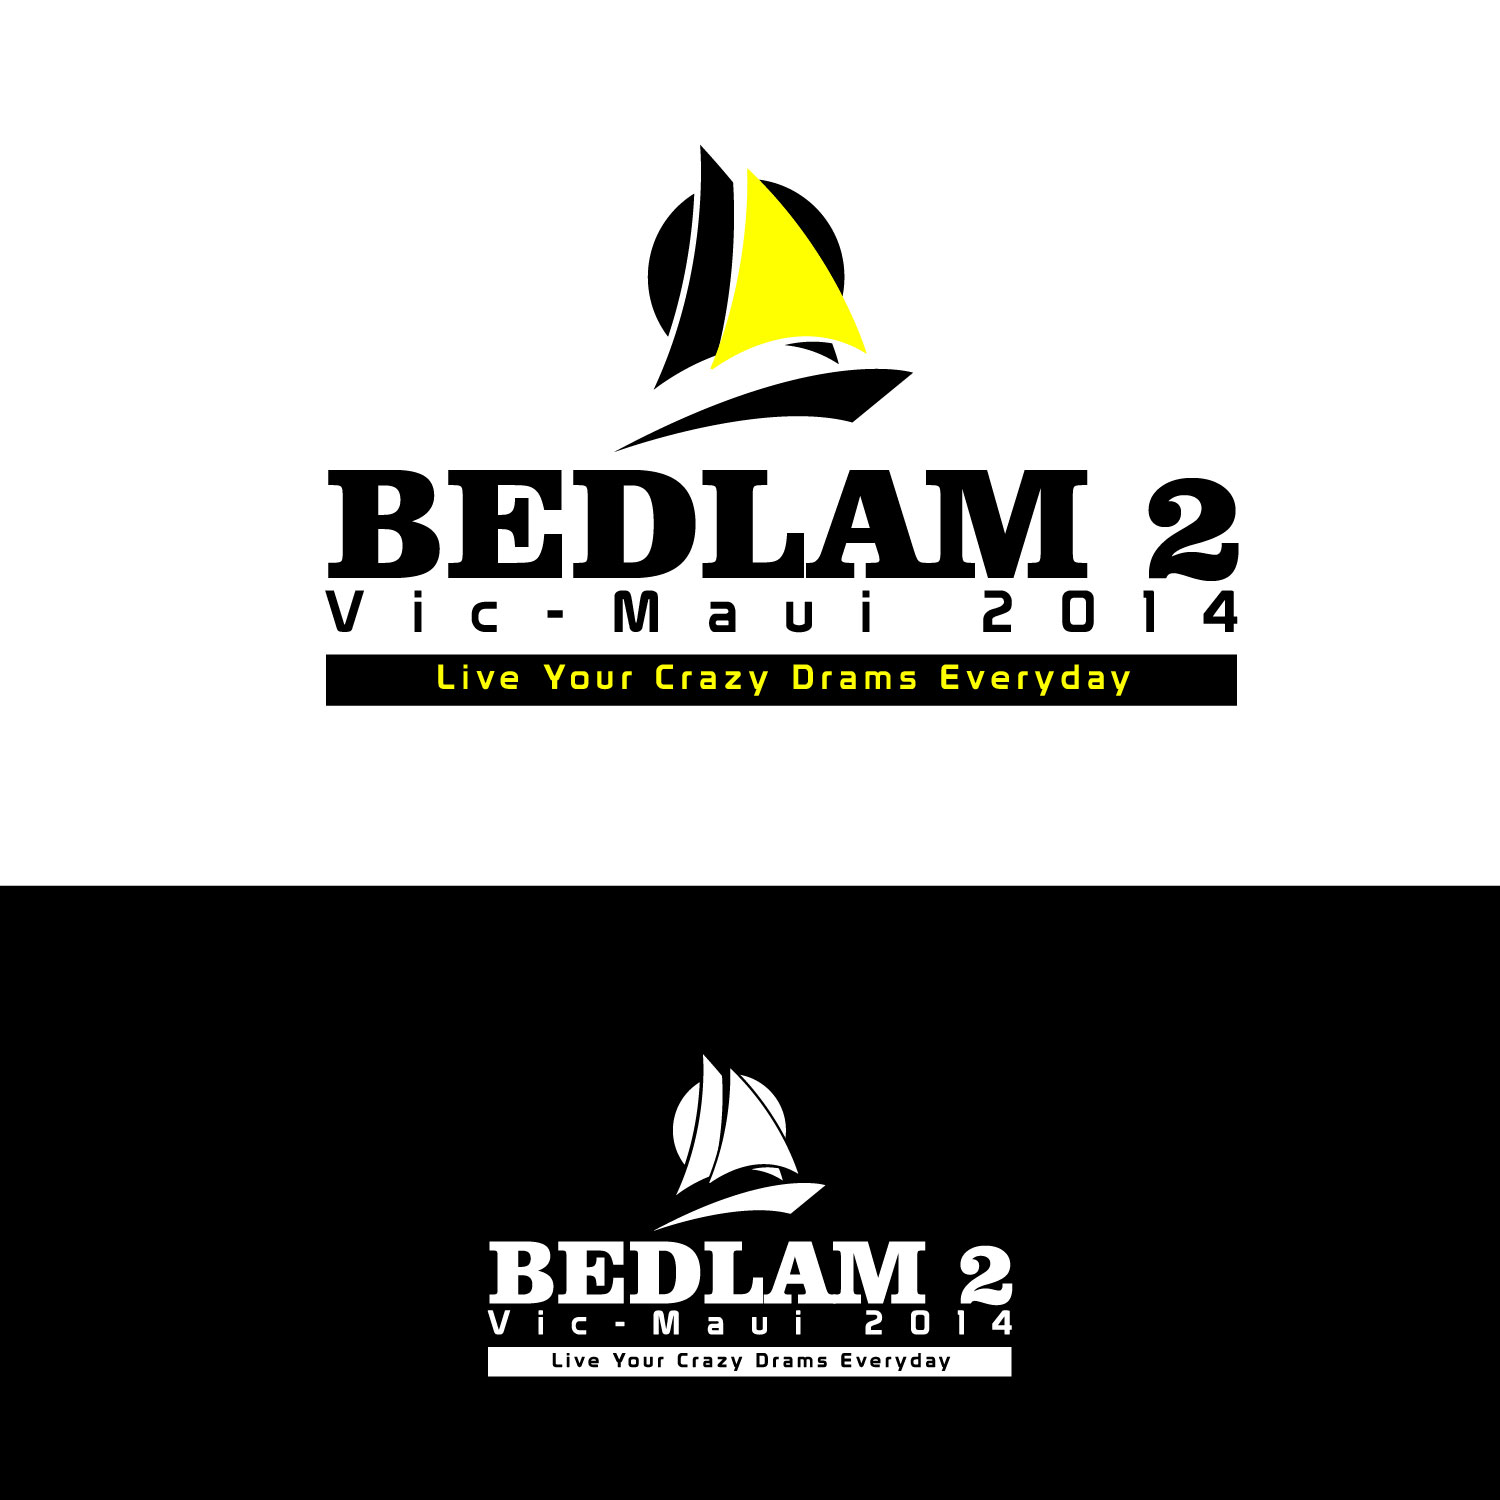 Logo Design by lagalag - Entry No. 38 in the Logo Design Contest Artistic Logo Design for Bedlam 2  Vic-Maui 2014.